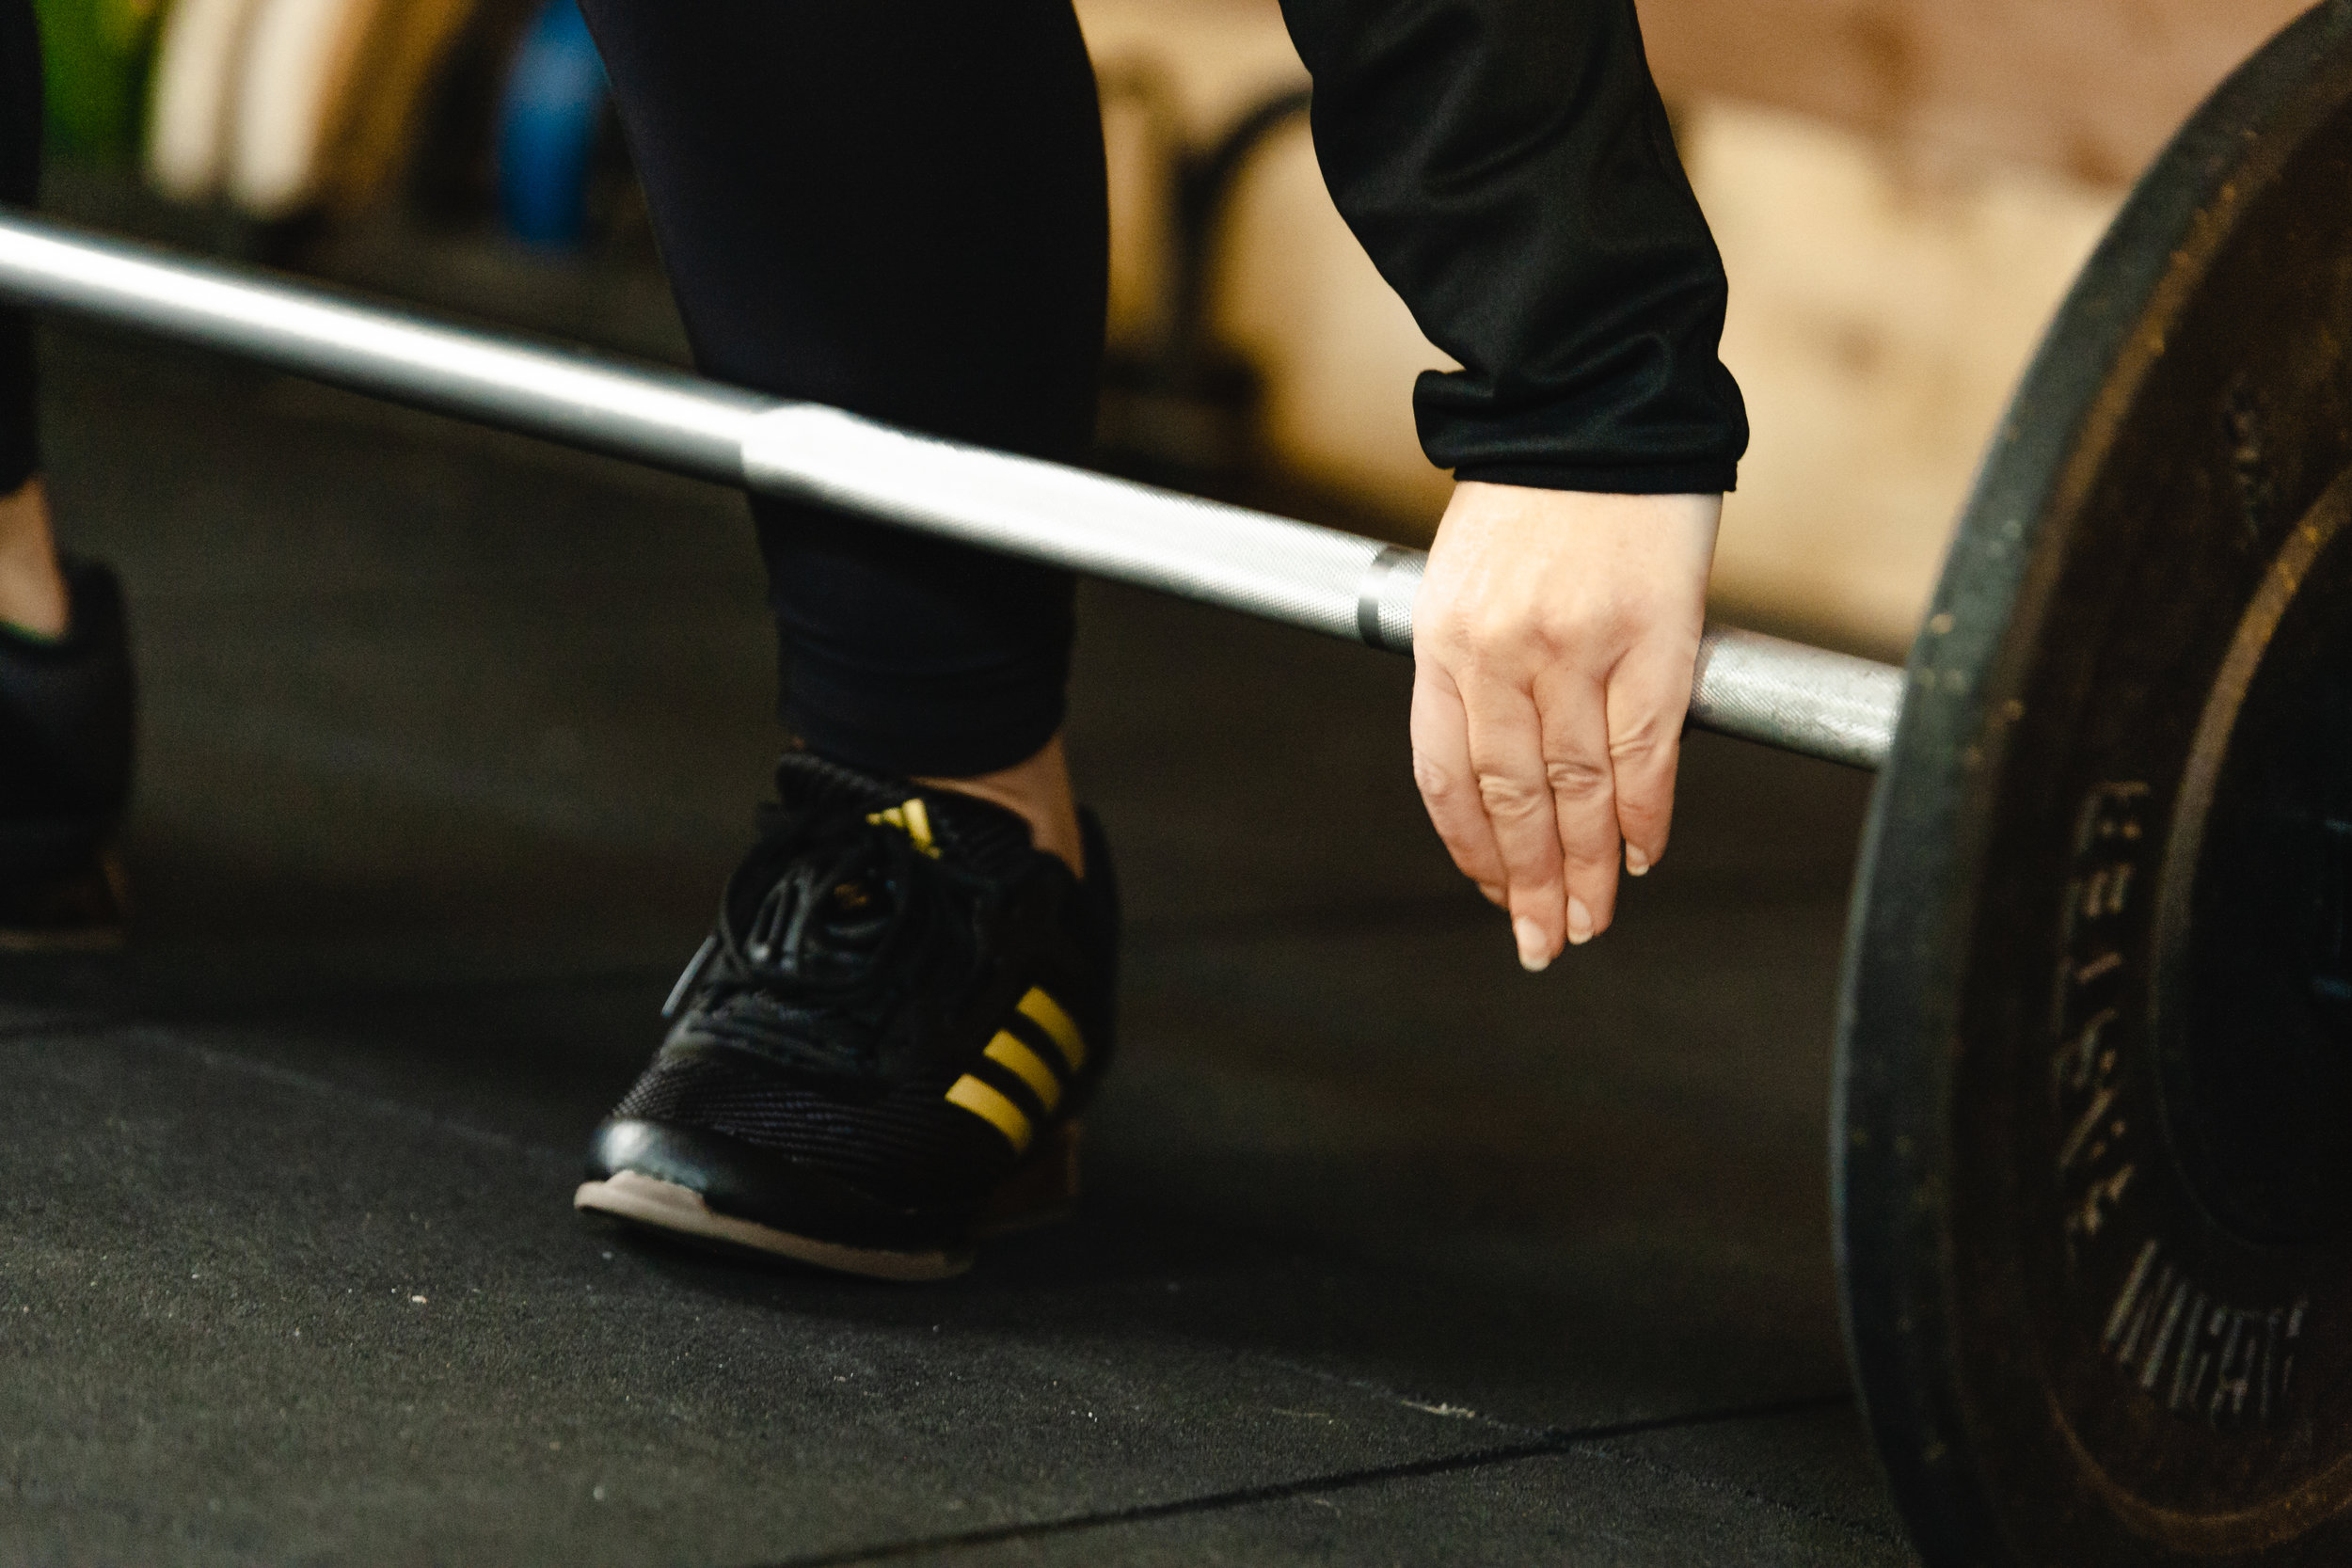 Drew_Irvine_Photography_2019_May_MVMT42_CrossFit_Gym_-126.jpg